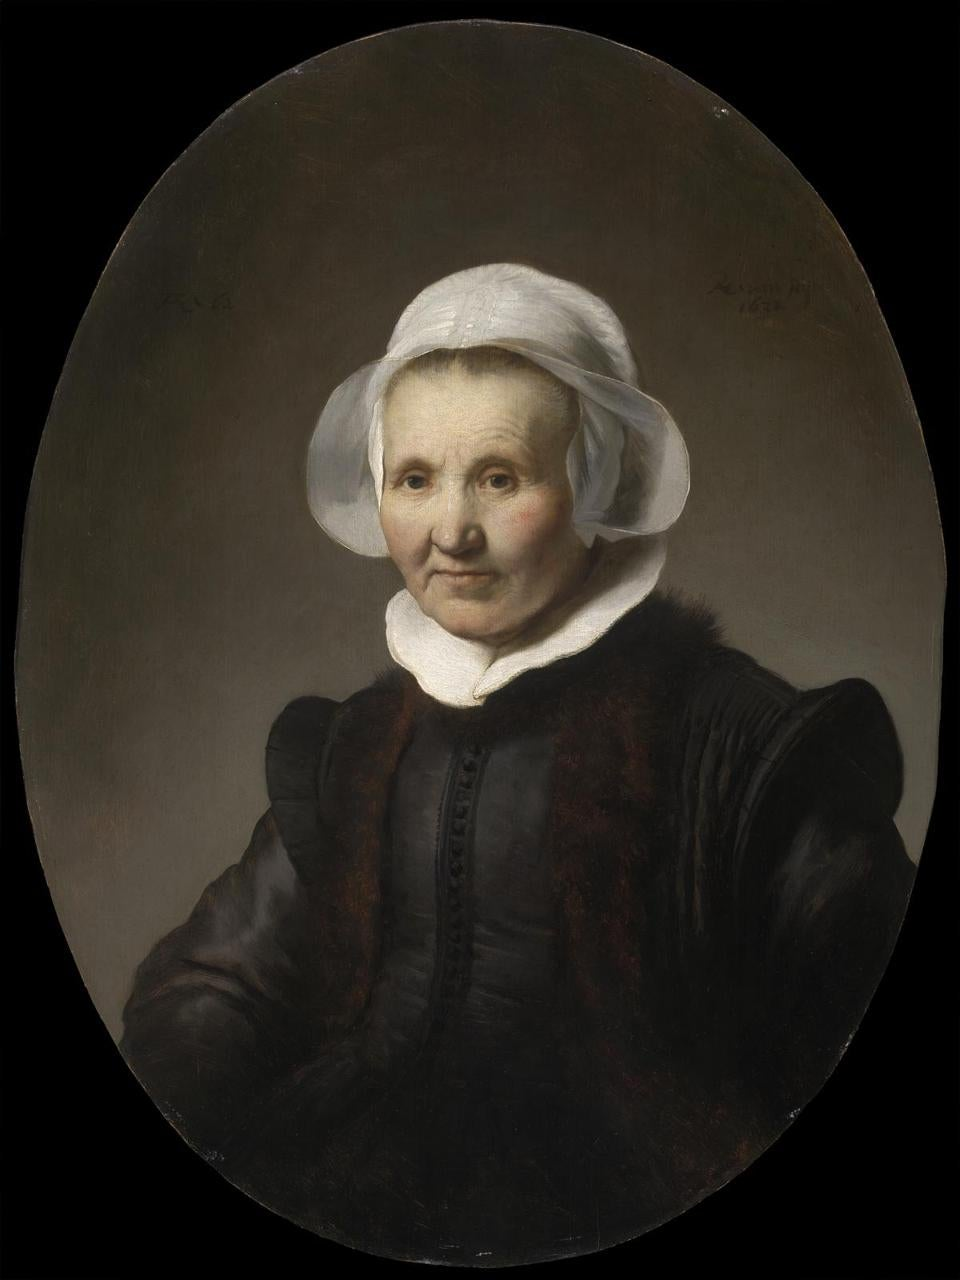 Portrait of Aeltje Uylenburgh Rembrandt Harmensz. van Rijn (Dutch, 1606Ð1669) 1632 Oil on panel * Rose-Marie and Eijk van Otterloo Collection * Reproduced with permission. * Courtesy Museum of Fine Arts, Boston 12dutchgift